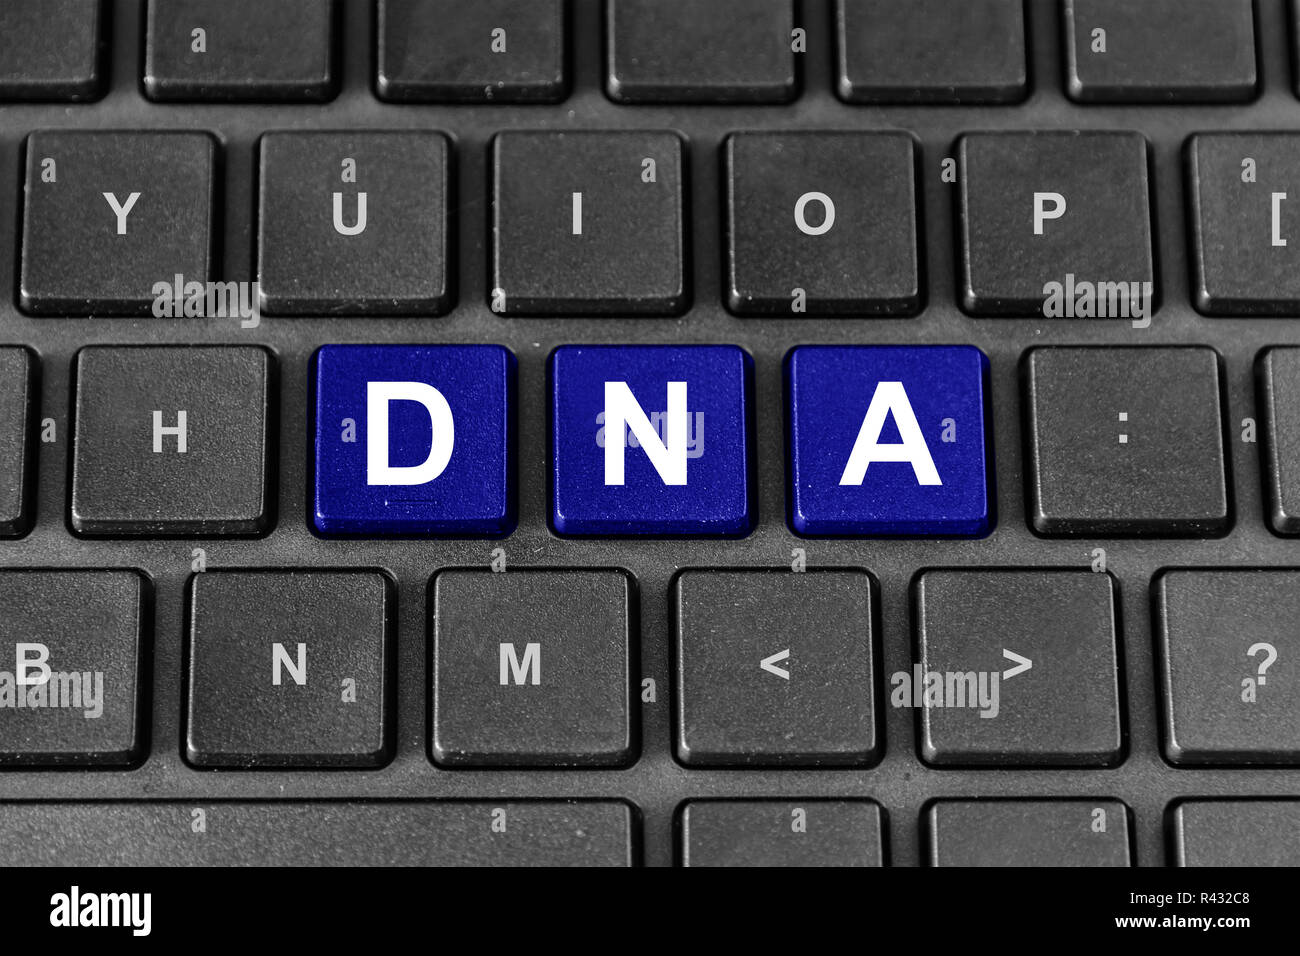 DNA or Deoxyribonucleic Acid on keyboard - Stock Image